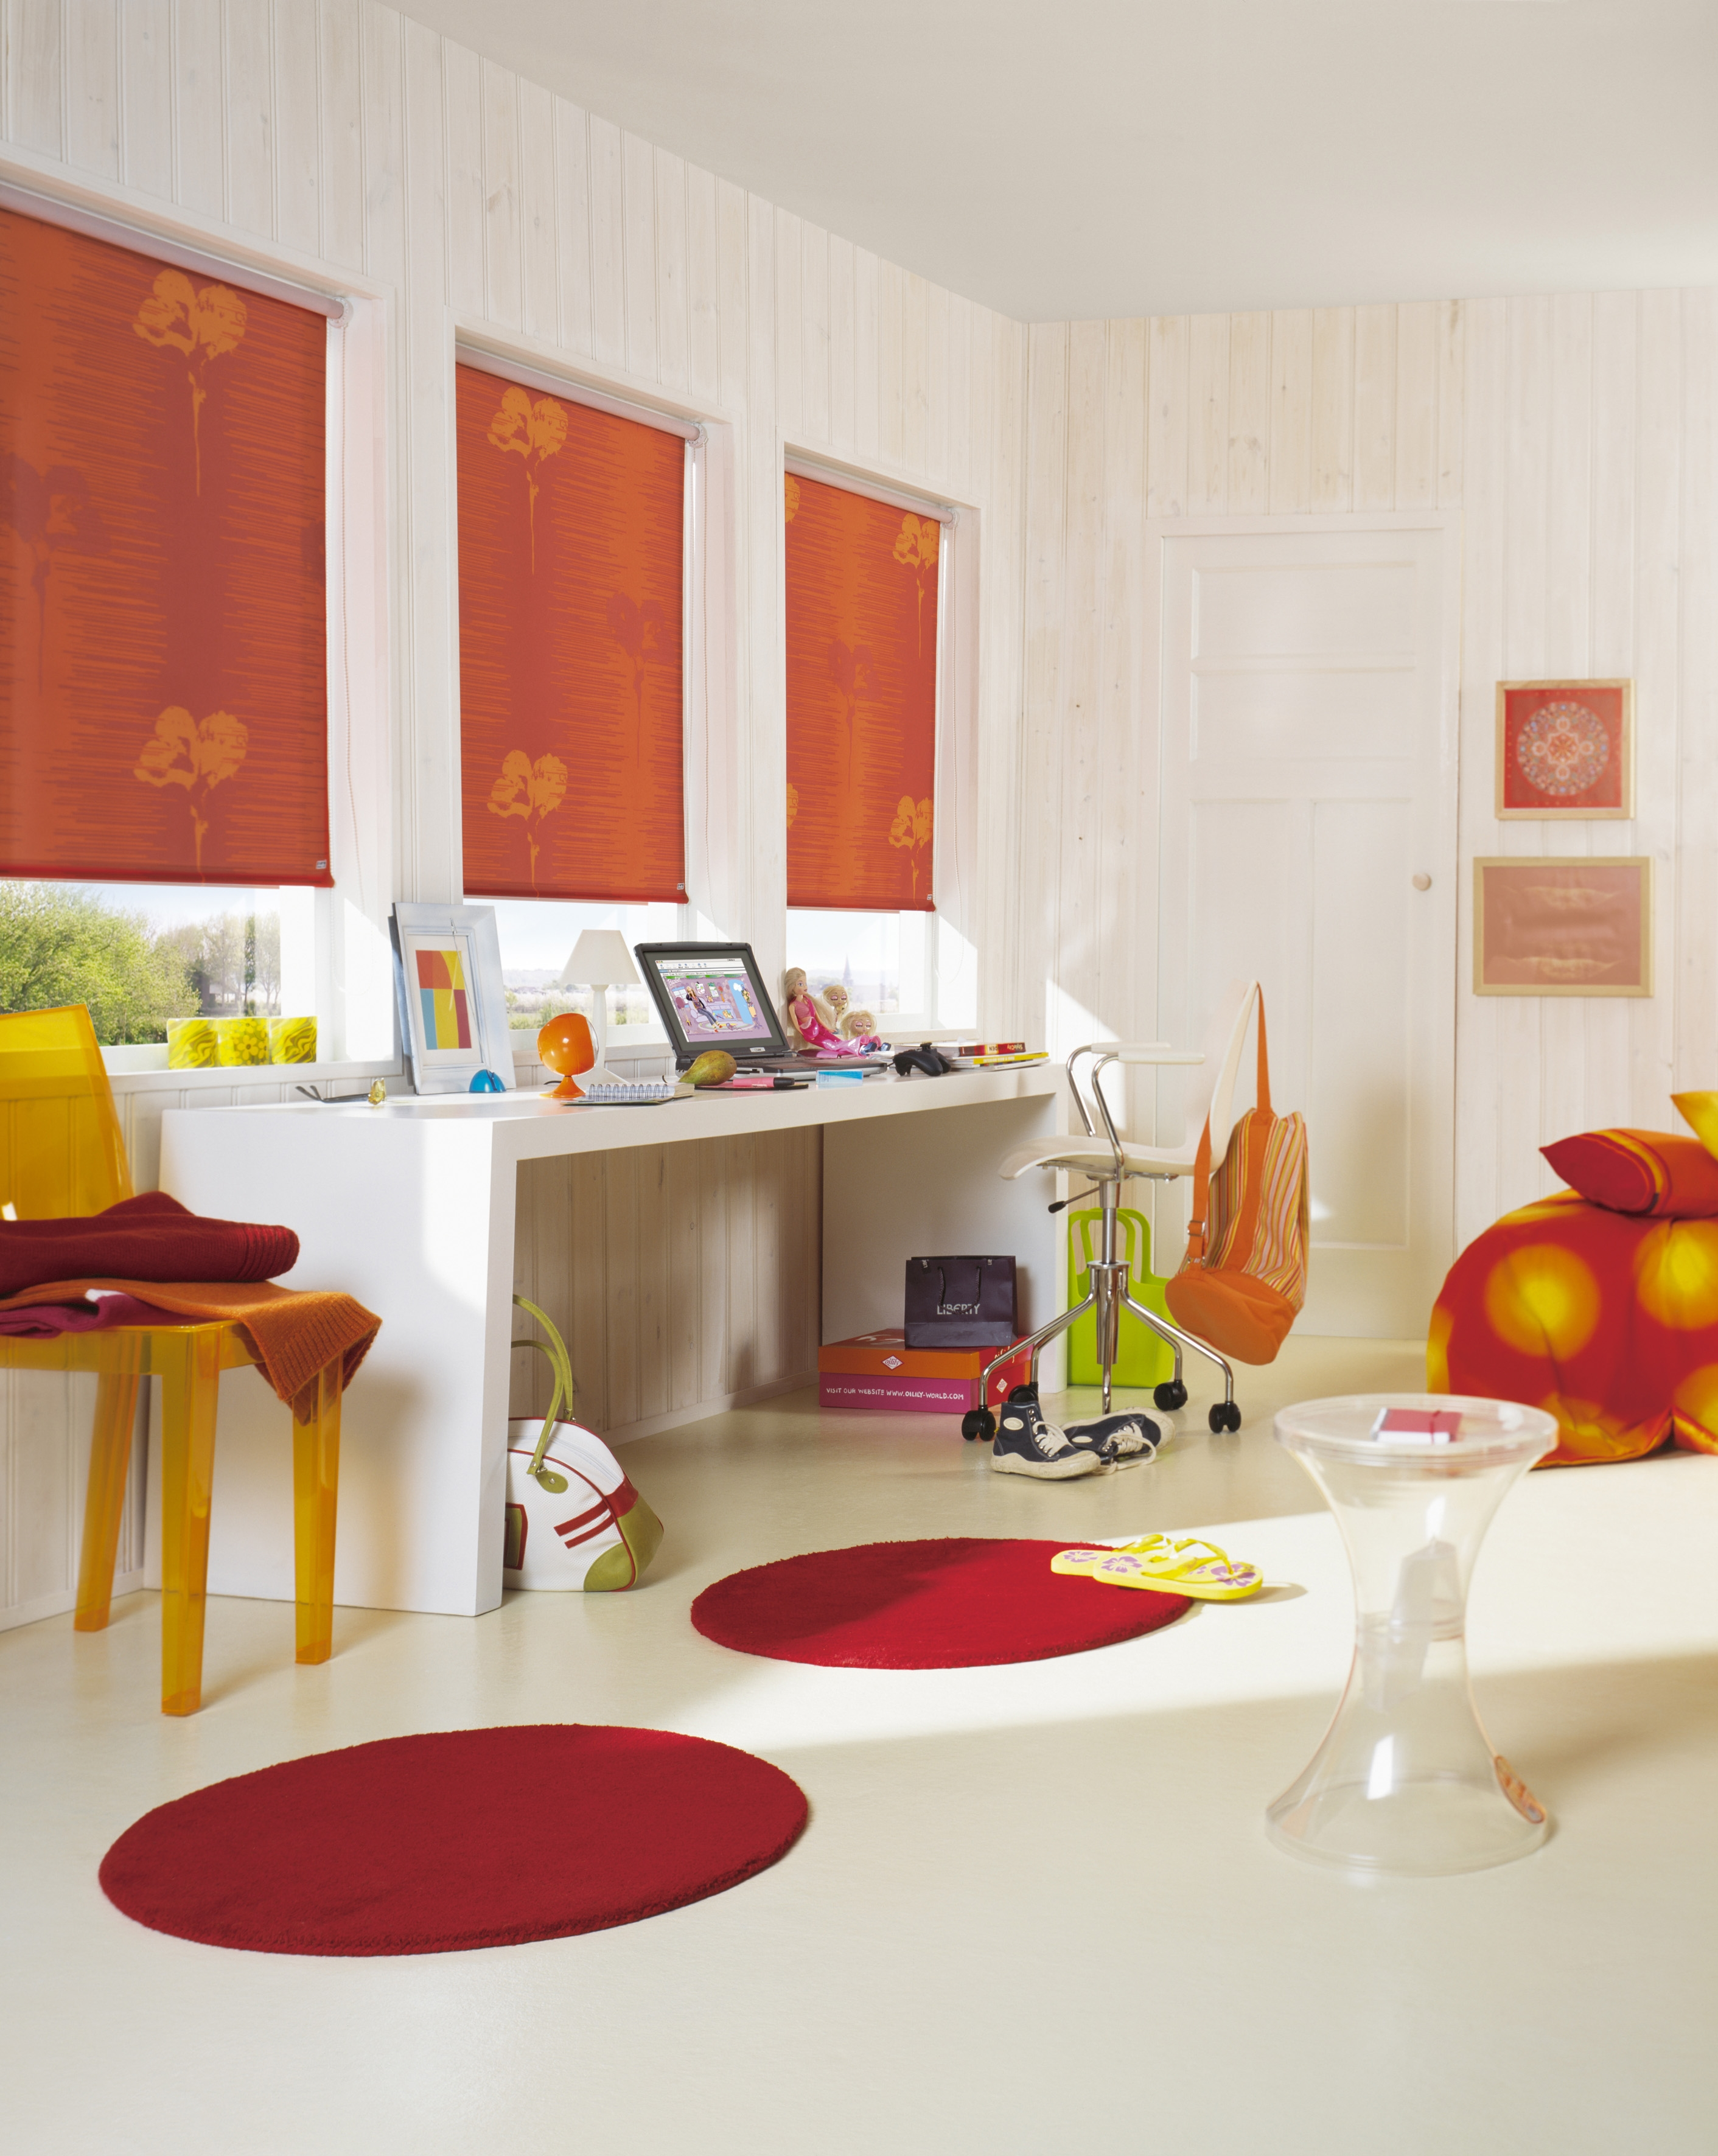 Orange Roller Blinds Bathroom Ideas Pinterest Uxui Designer Pertaining To Orange Roller Blinds (Image 11 of 15)